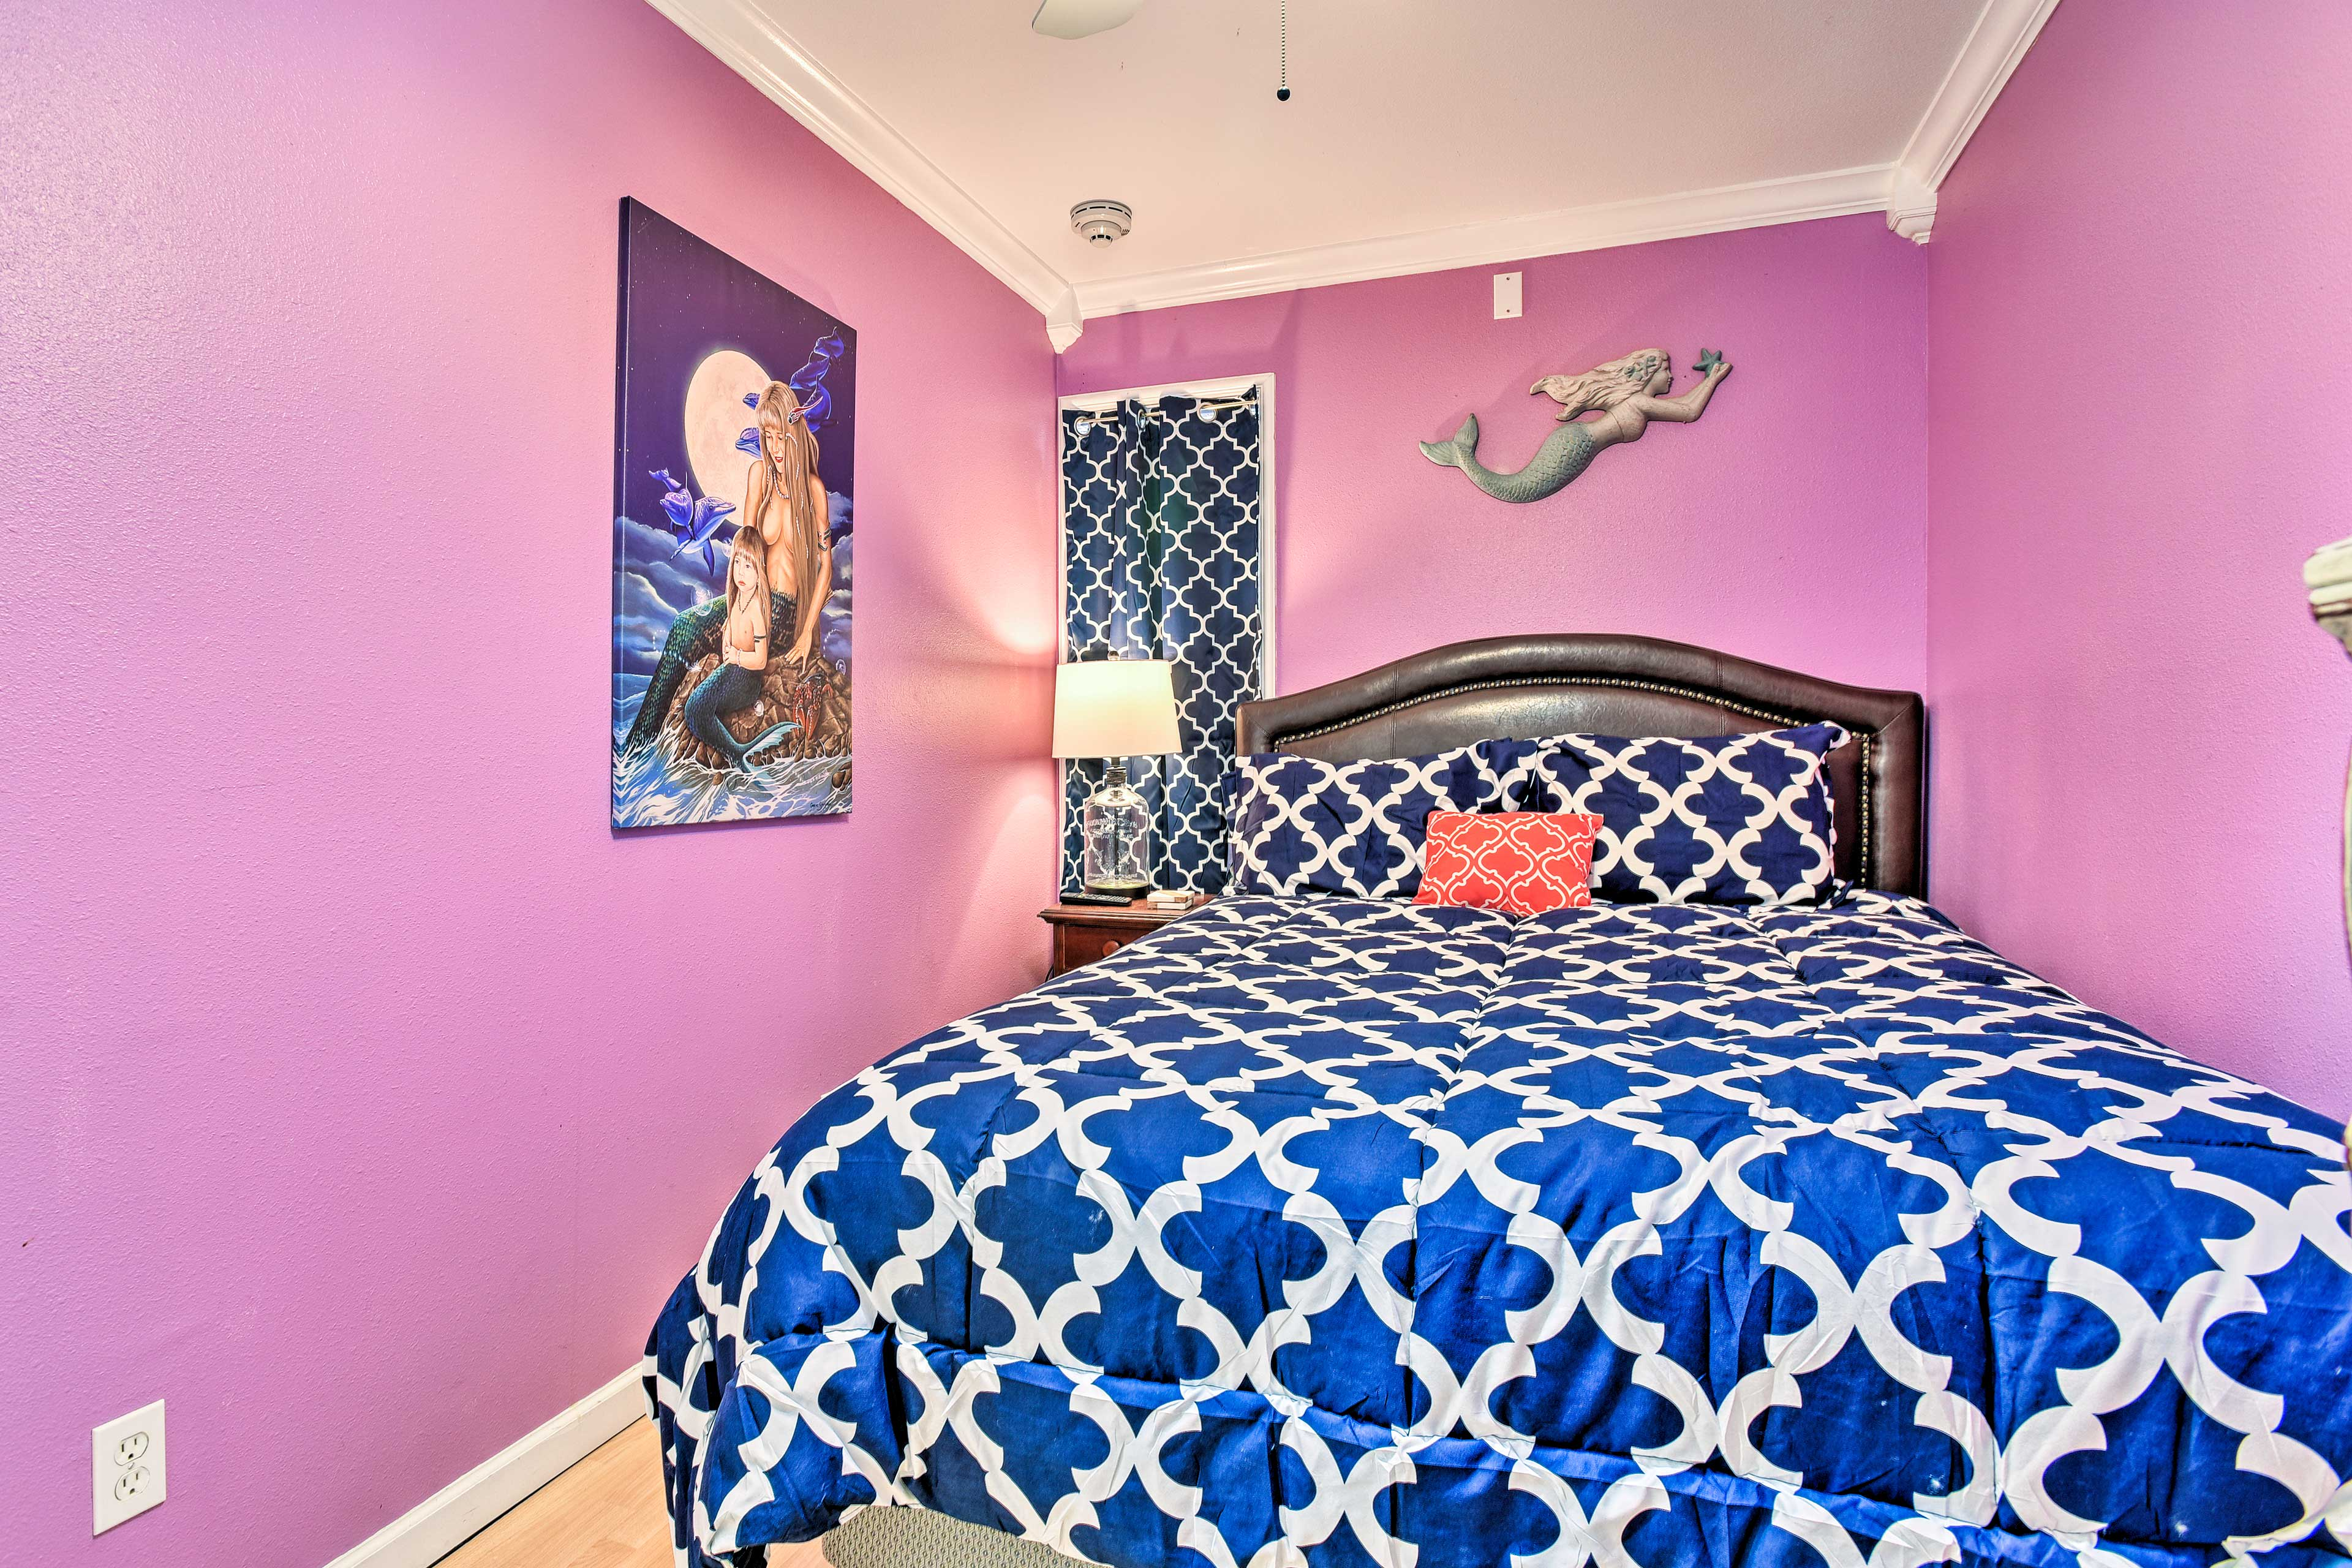 Get a great night's sleep on the king bed in this room.